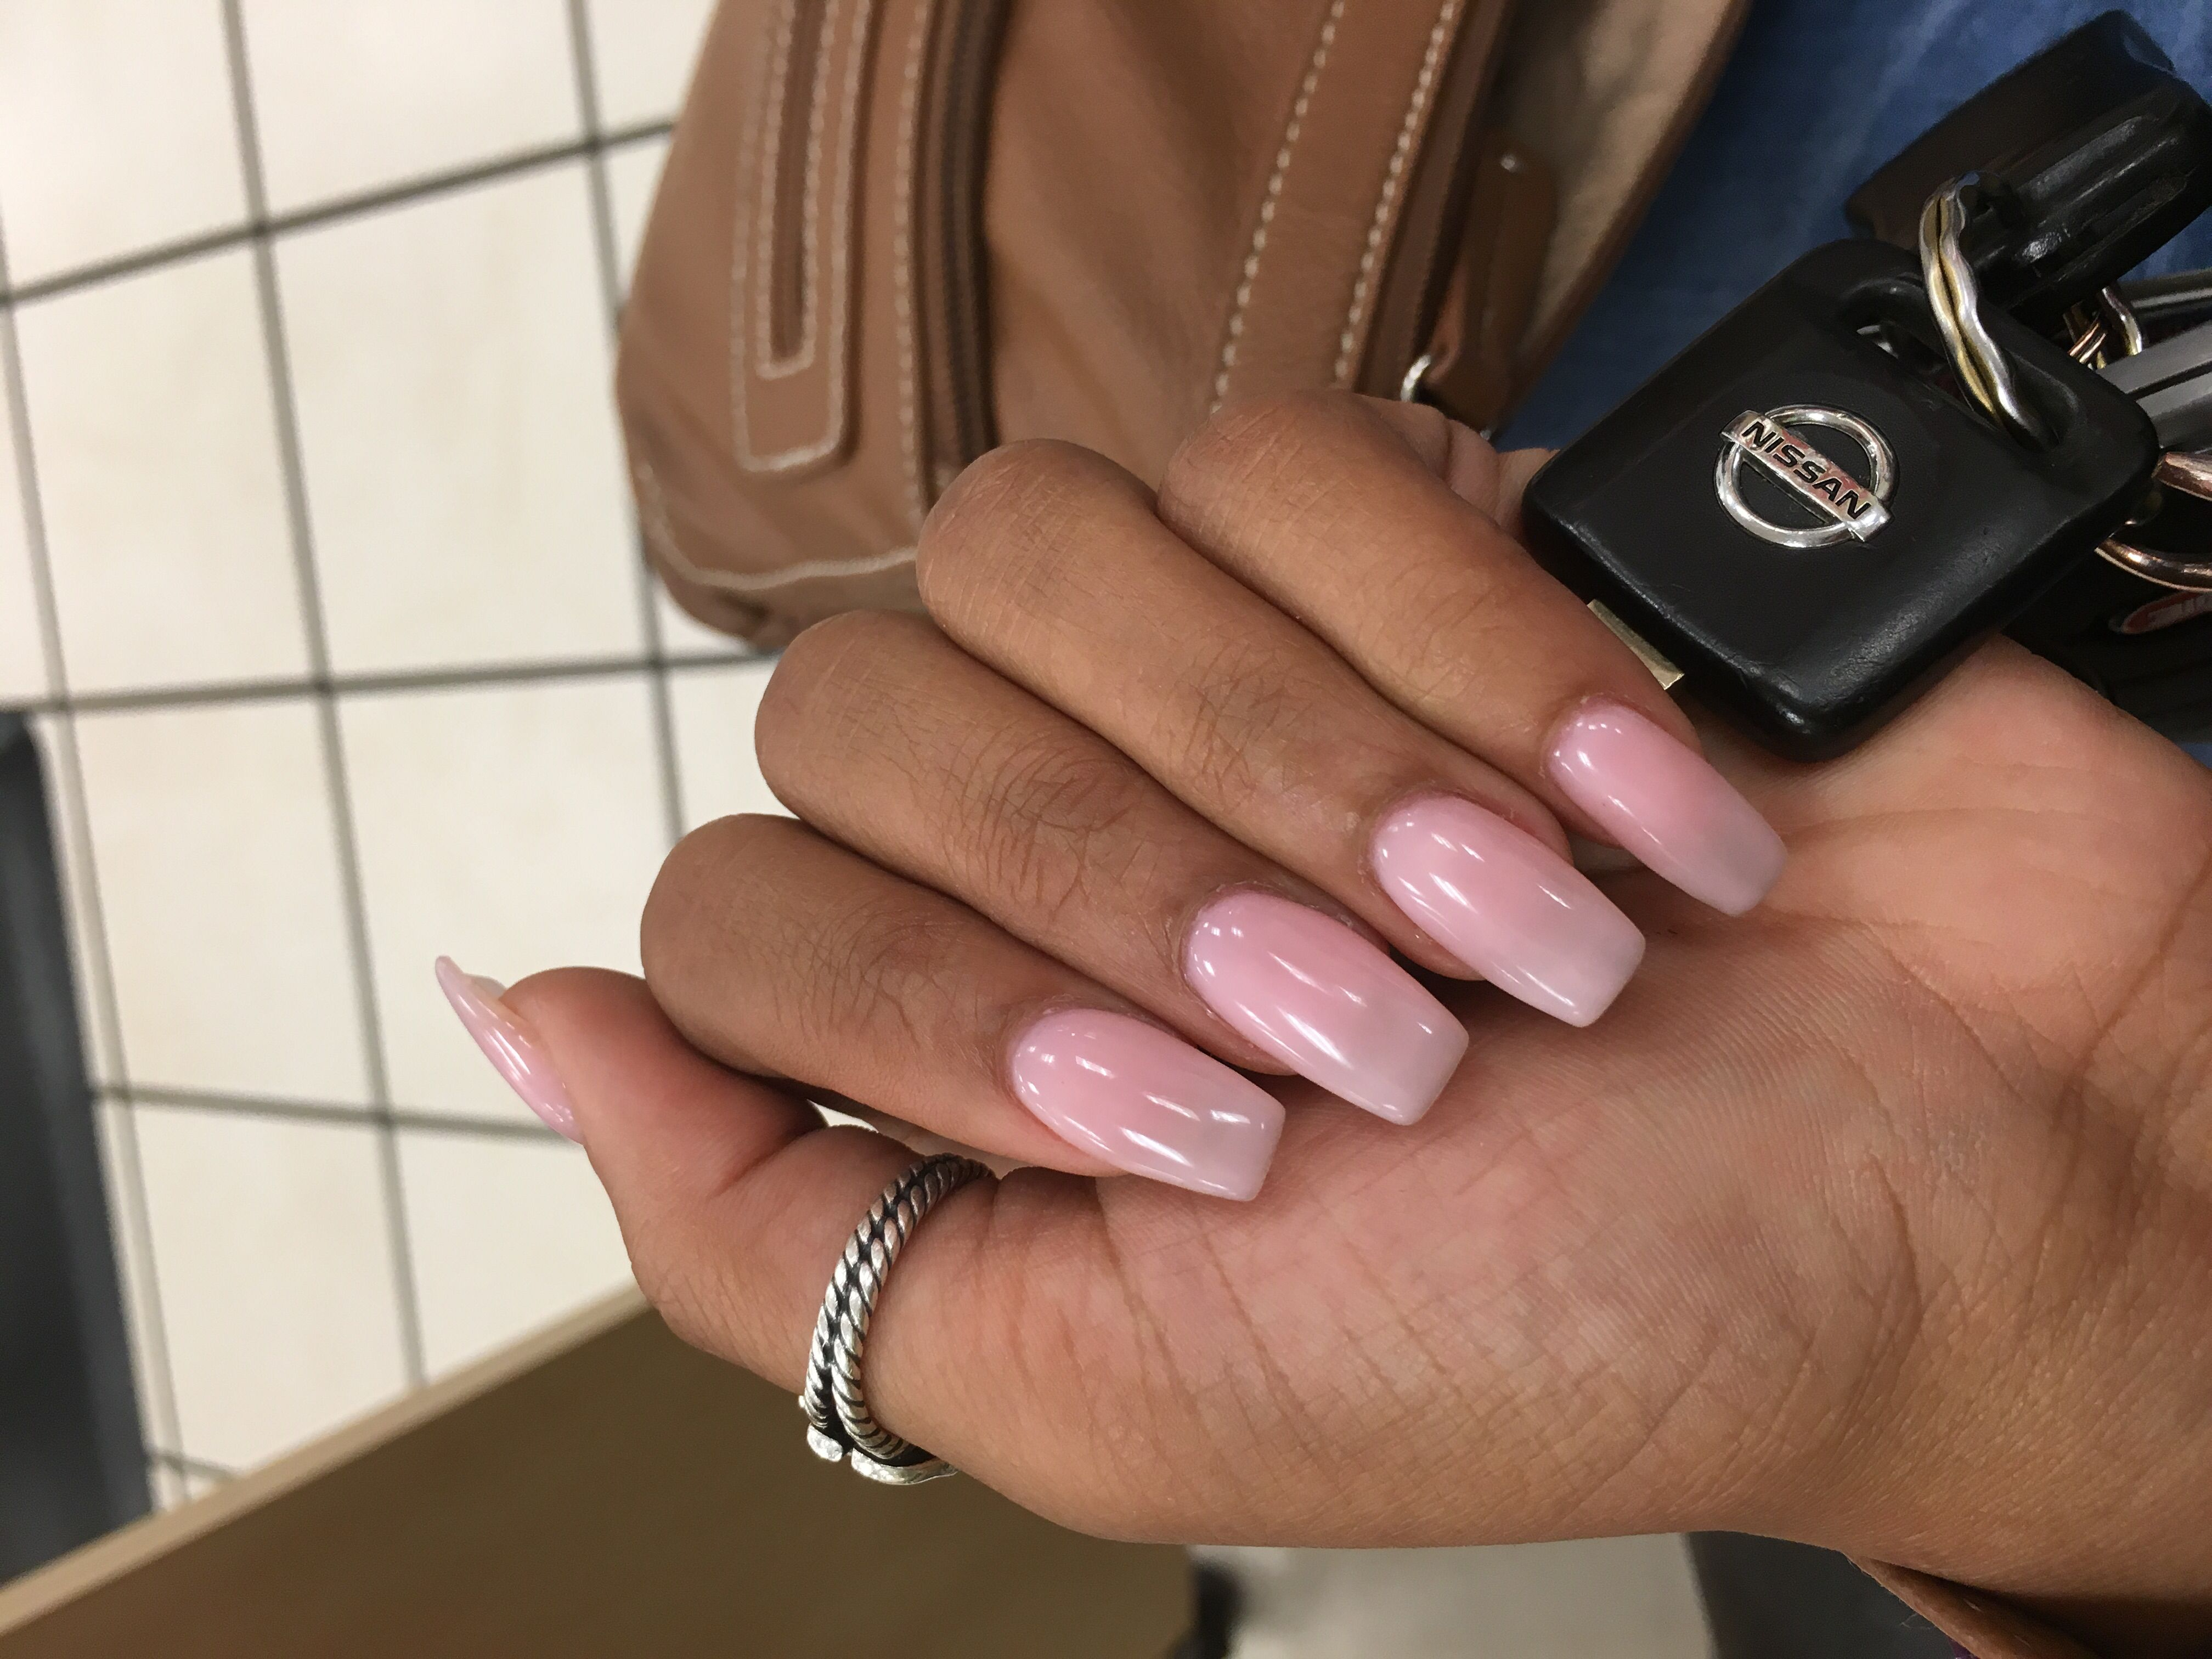 Nunu Nails Coffin Shaped Color Called Bubble Bath By Opi Gel Nails Shape Gel Nail Colors Gel Nails French